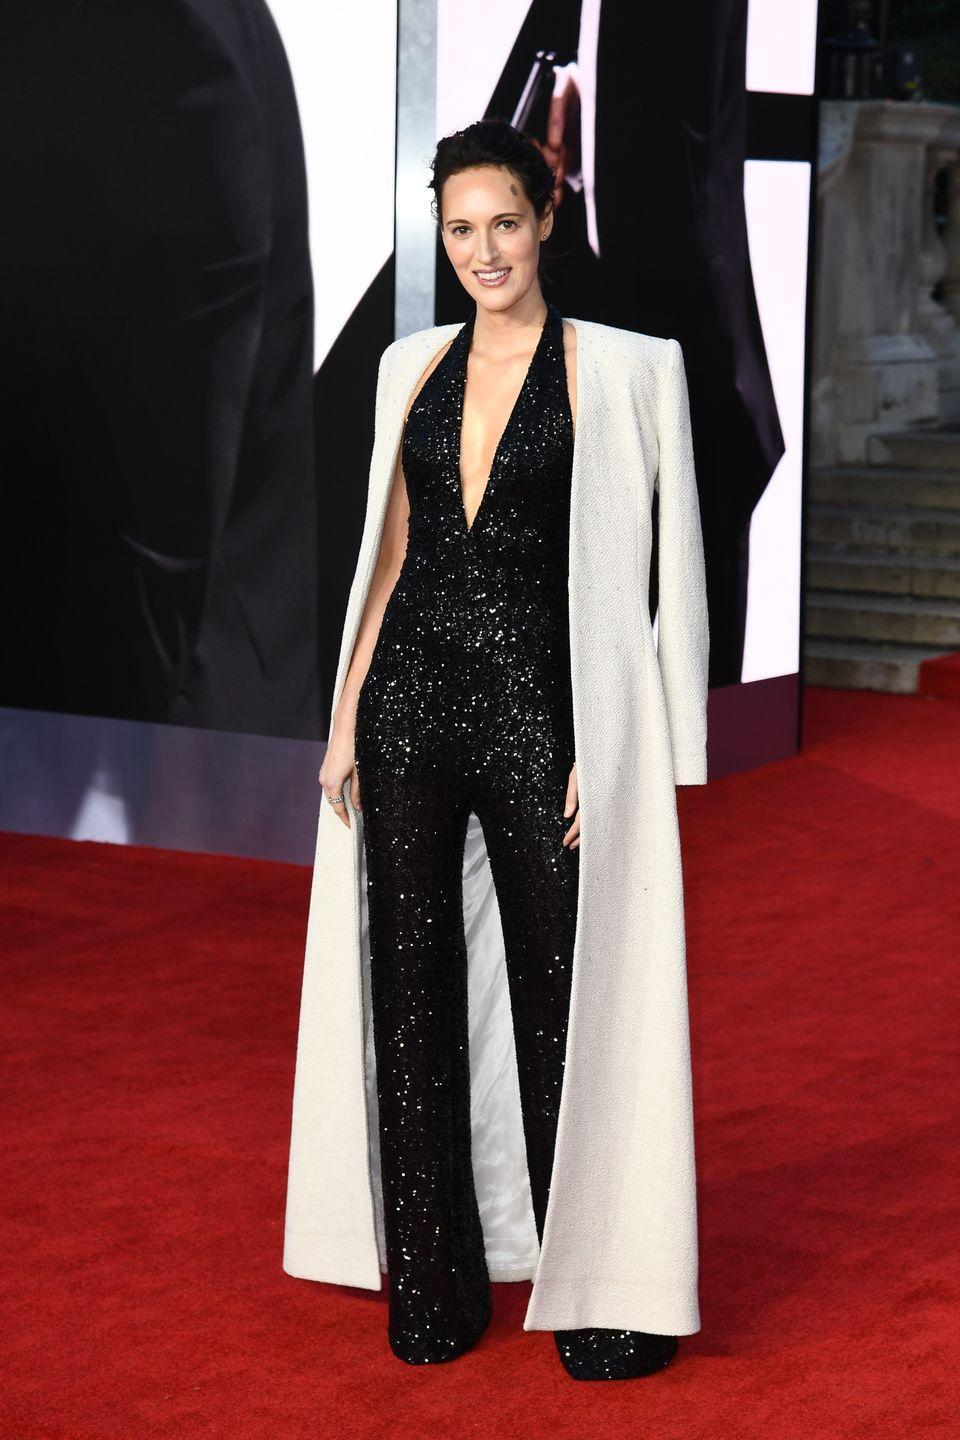 <p>Phoebe Waller Bridge, who has contributed to the film's screenplay, wore a glittering black jumpsuit by Olivier Theyskens for Azzaro with a chic cream coat and Jessica McCormack jewellery.</p>